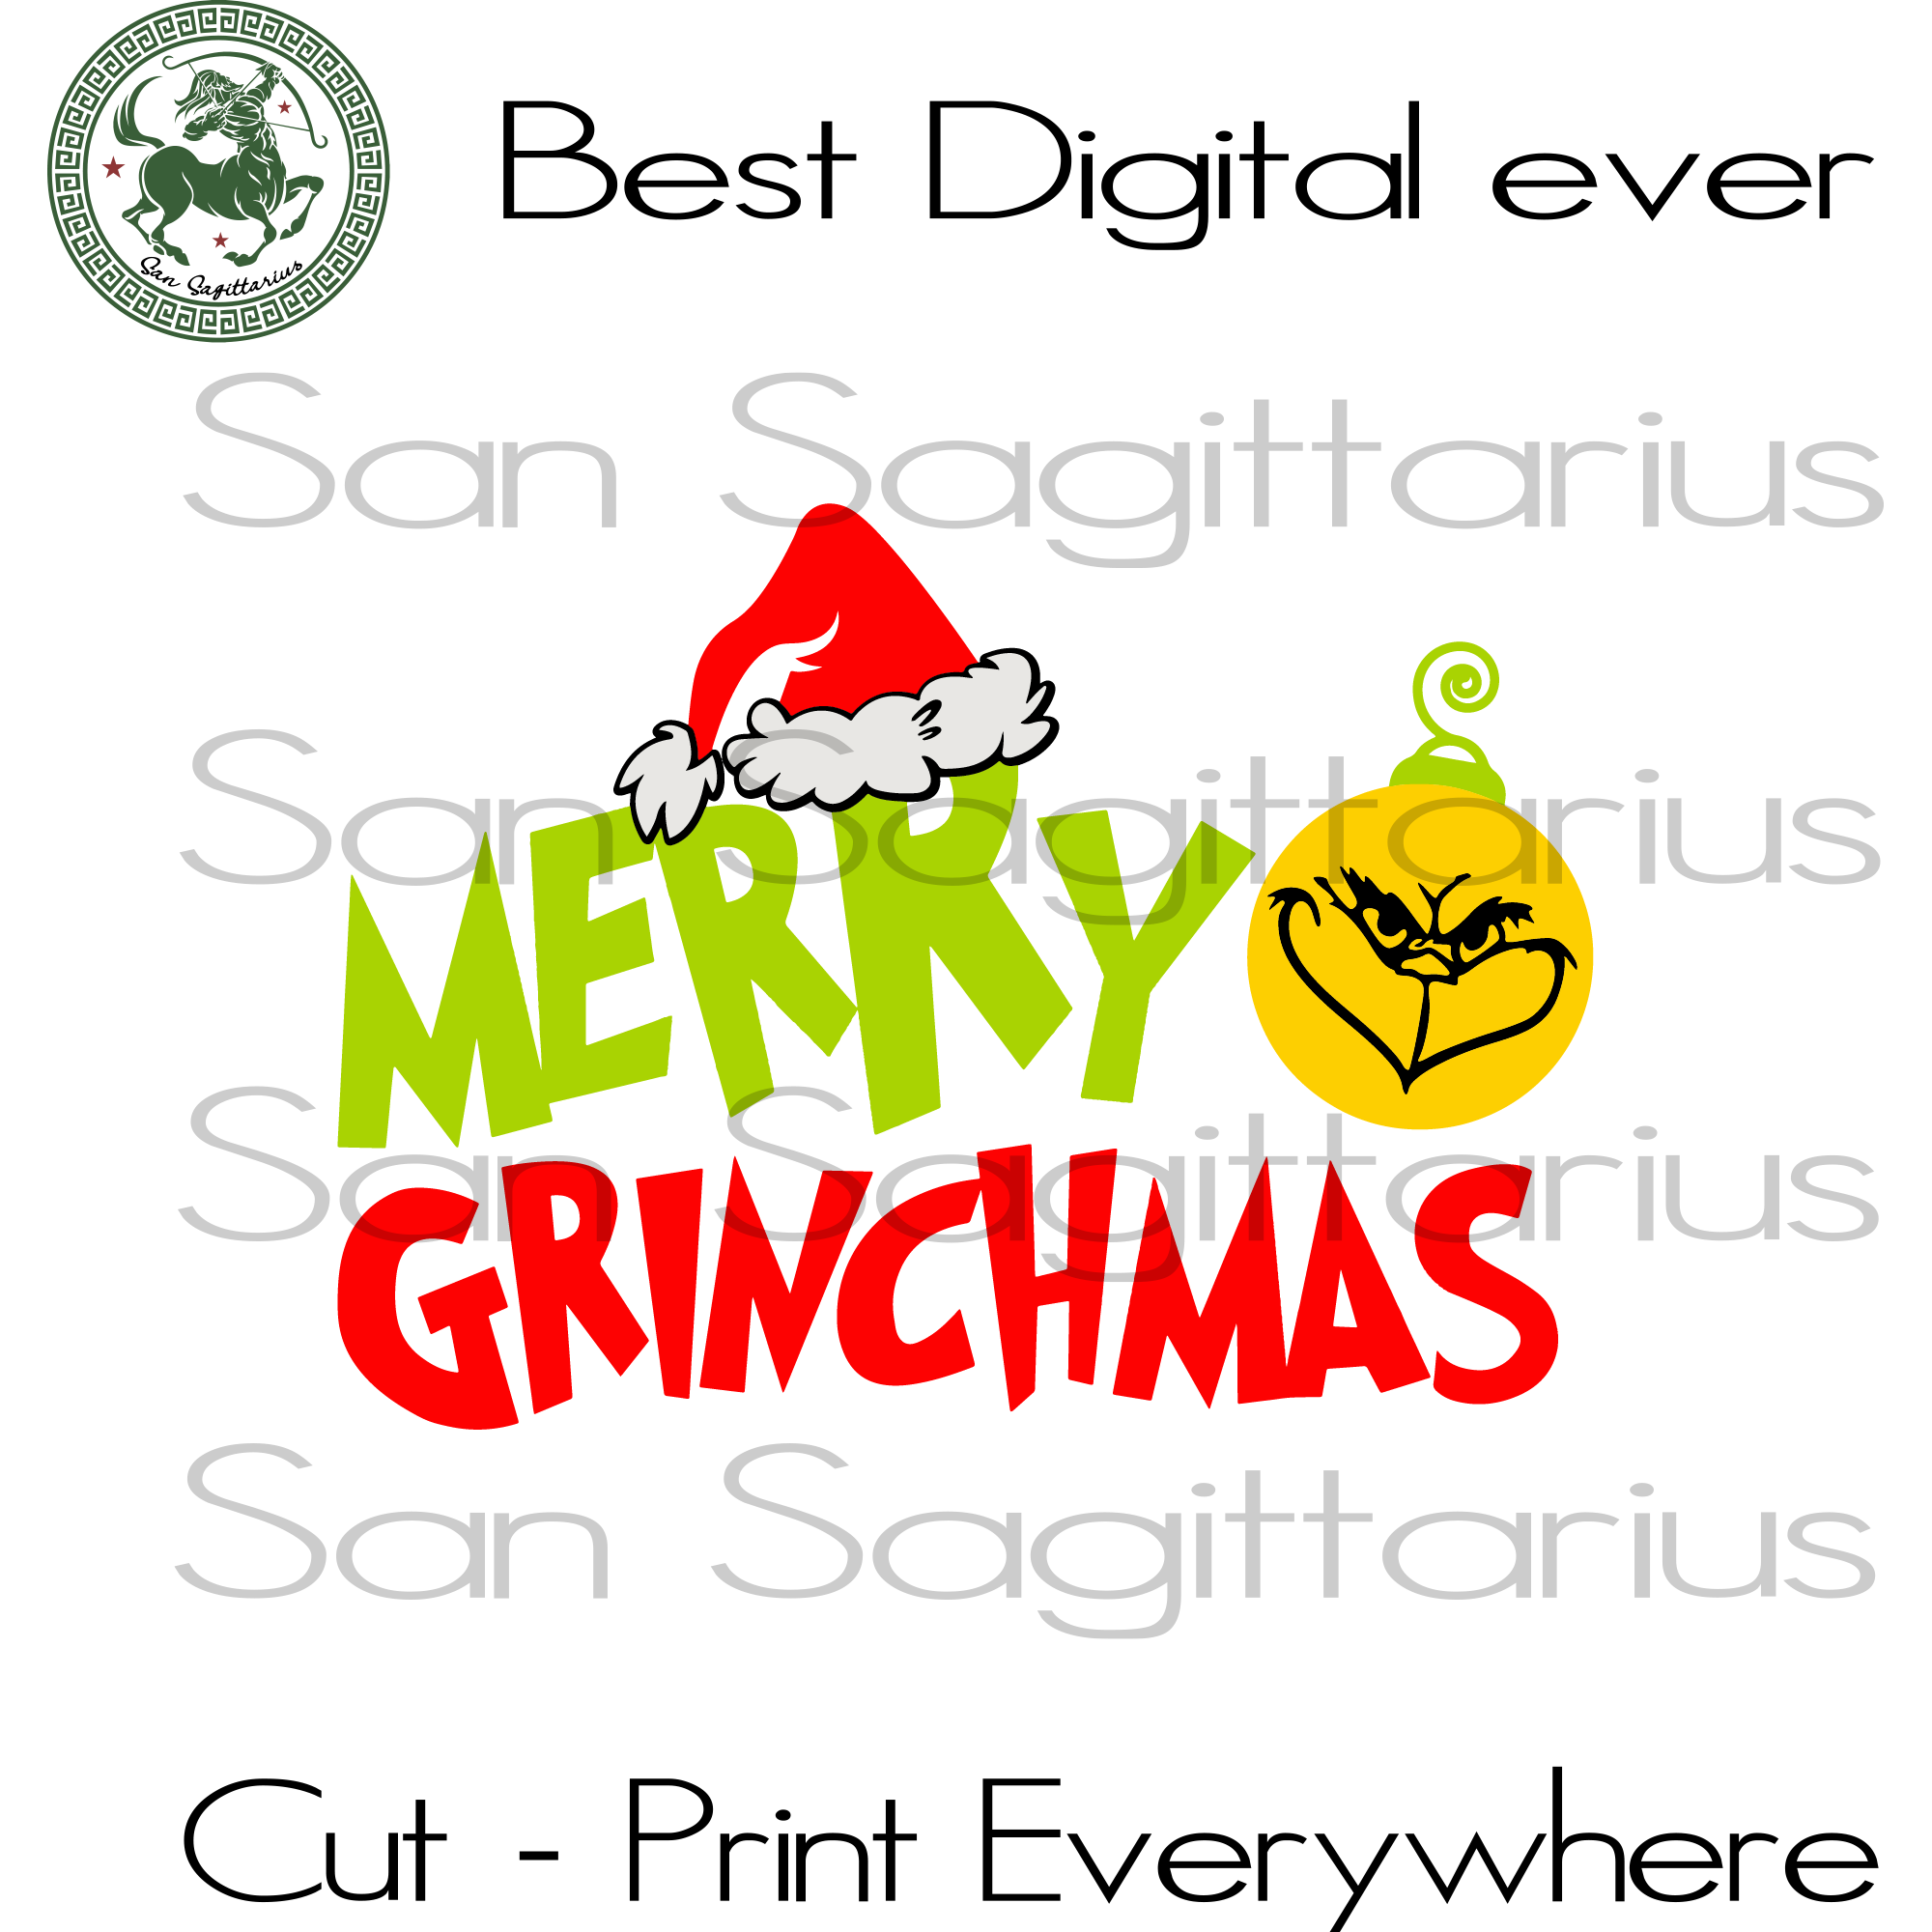 Merry Grinchmas, The Grinch Svg, Christmas Svg, Christmas Grinch Svg, The Grinch, Grinch Svg, The Grinch Lover Svg, Grinch Cut File, Grinch Christmas, Grinch Lover Svg, Christmas Gift, Christ